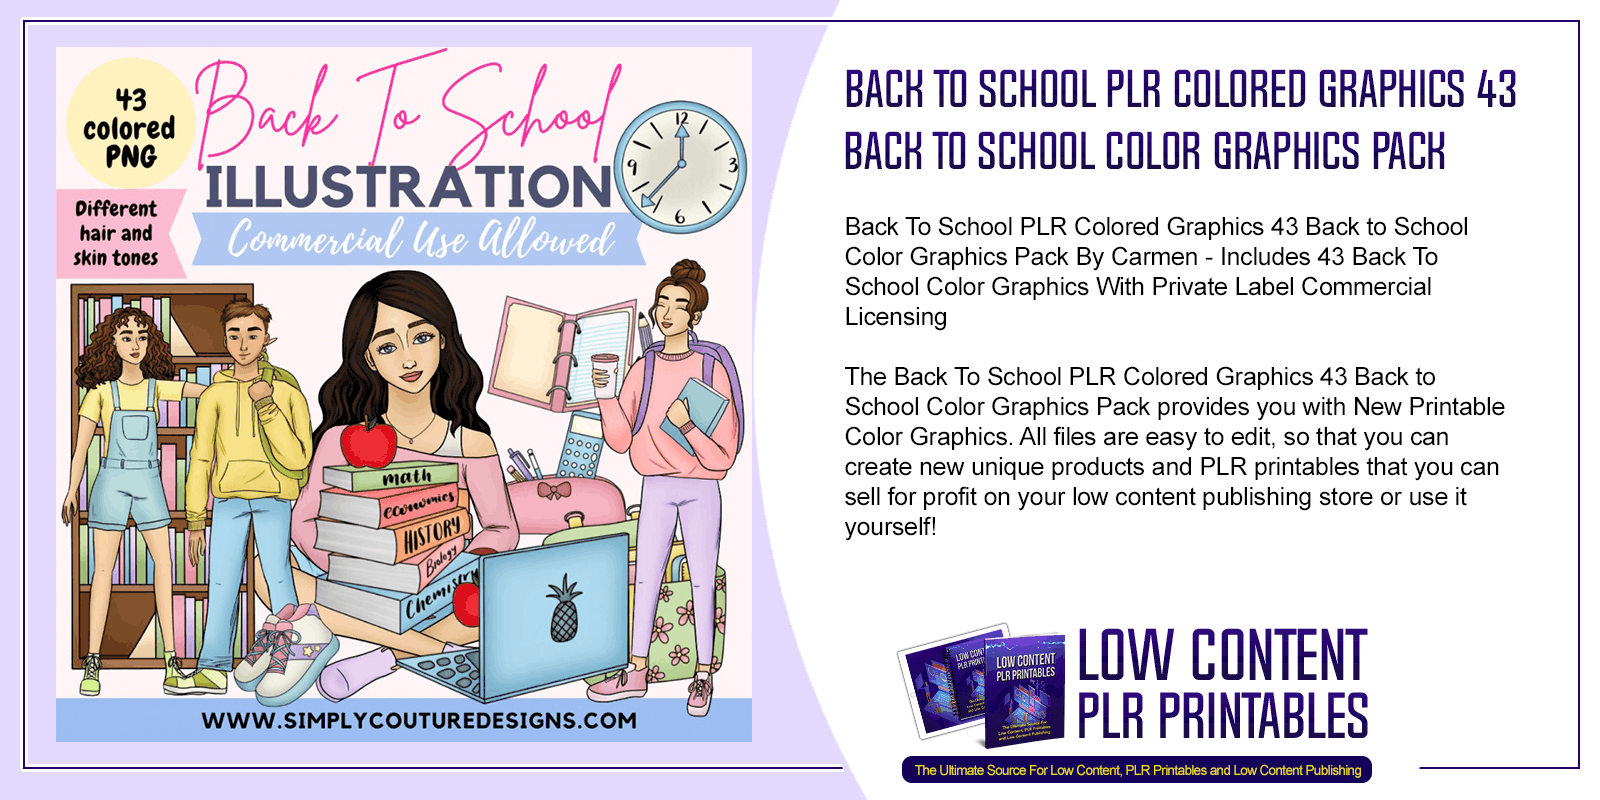 Back To School PLR Colored Graphics 43 Back to School Color Graphics Pack